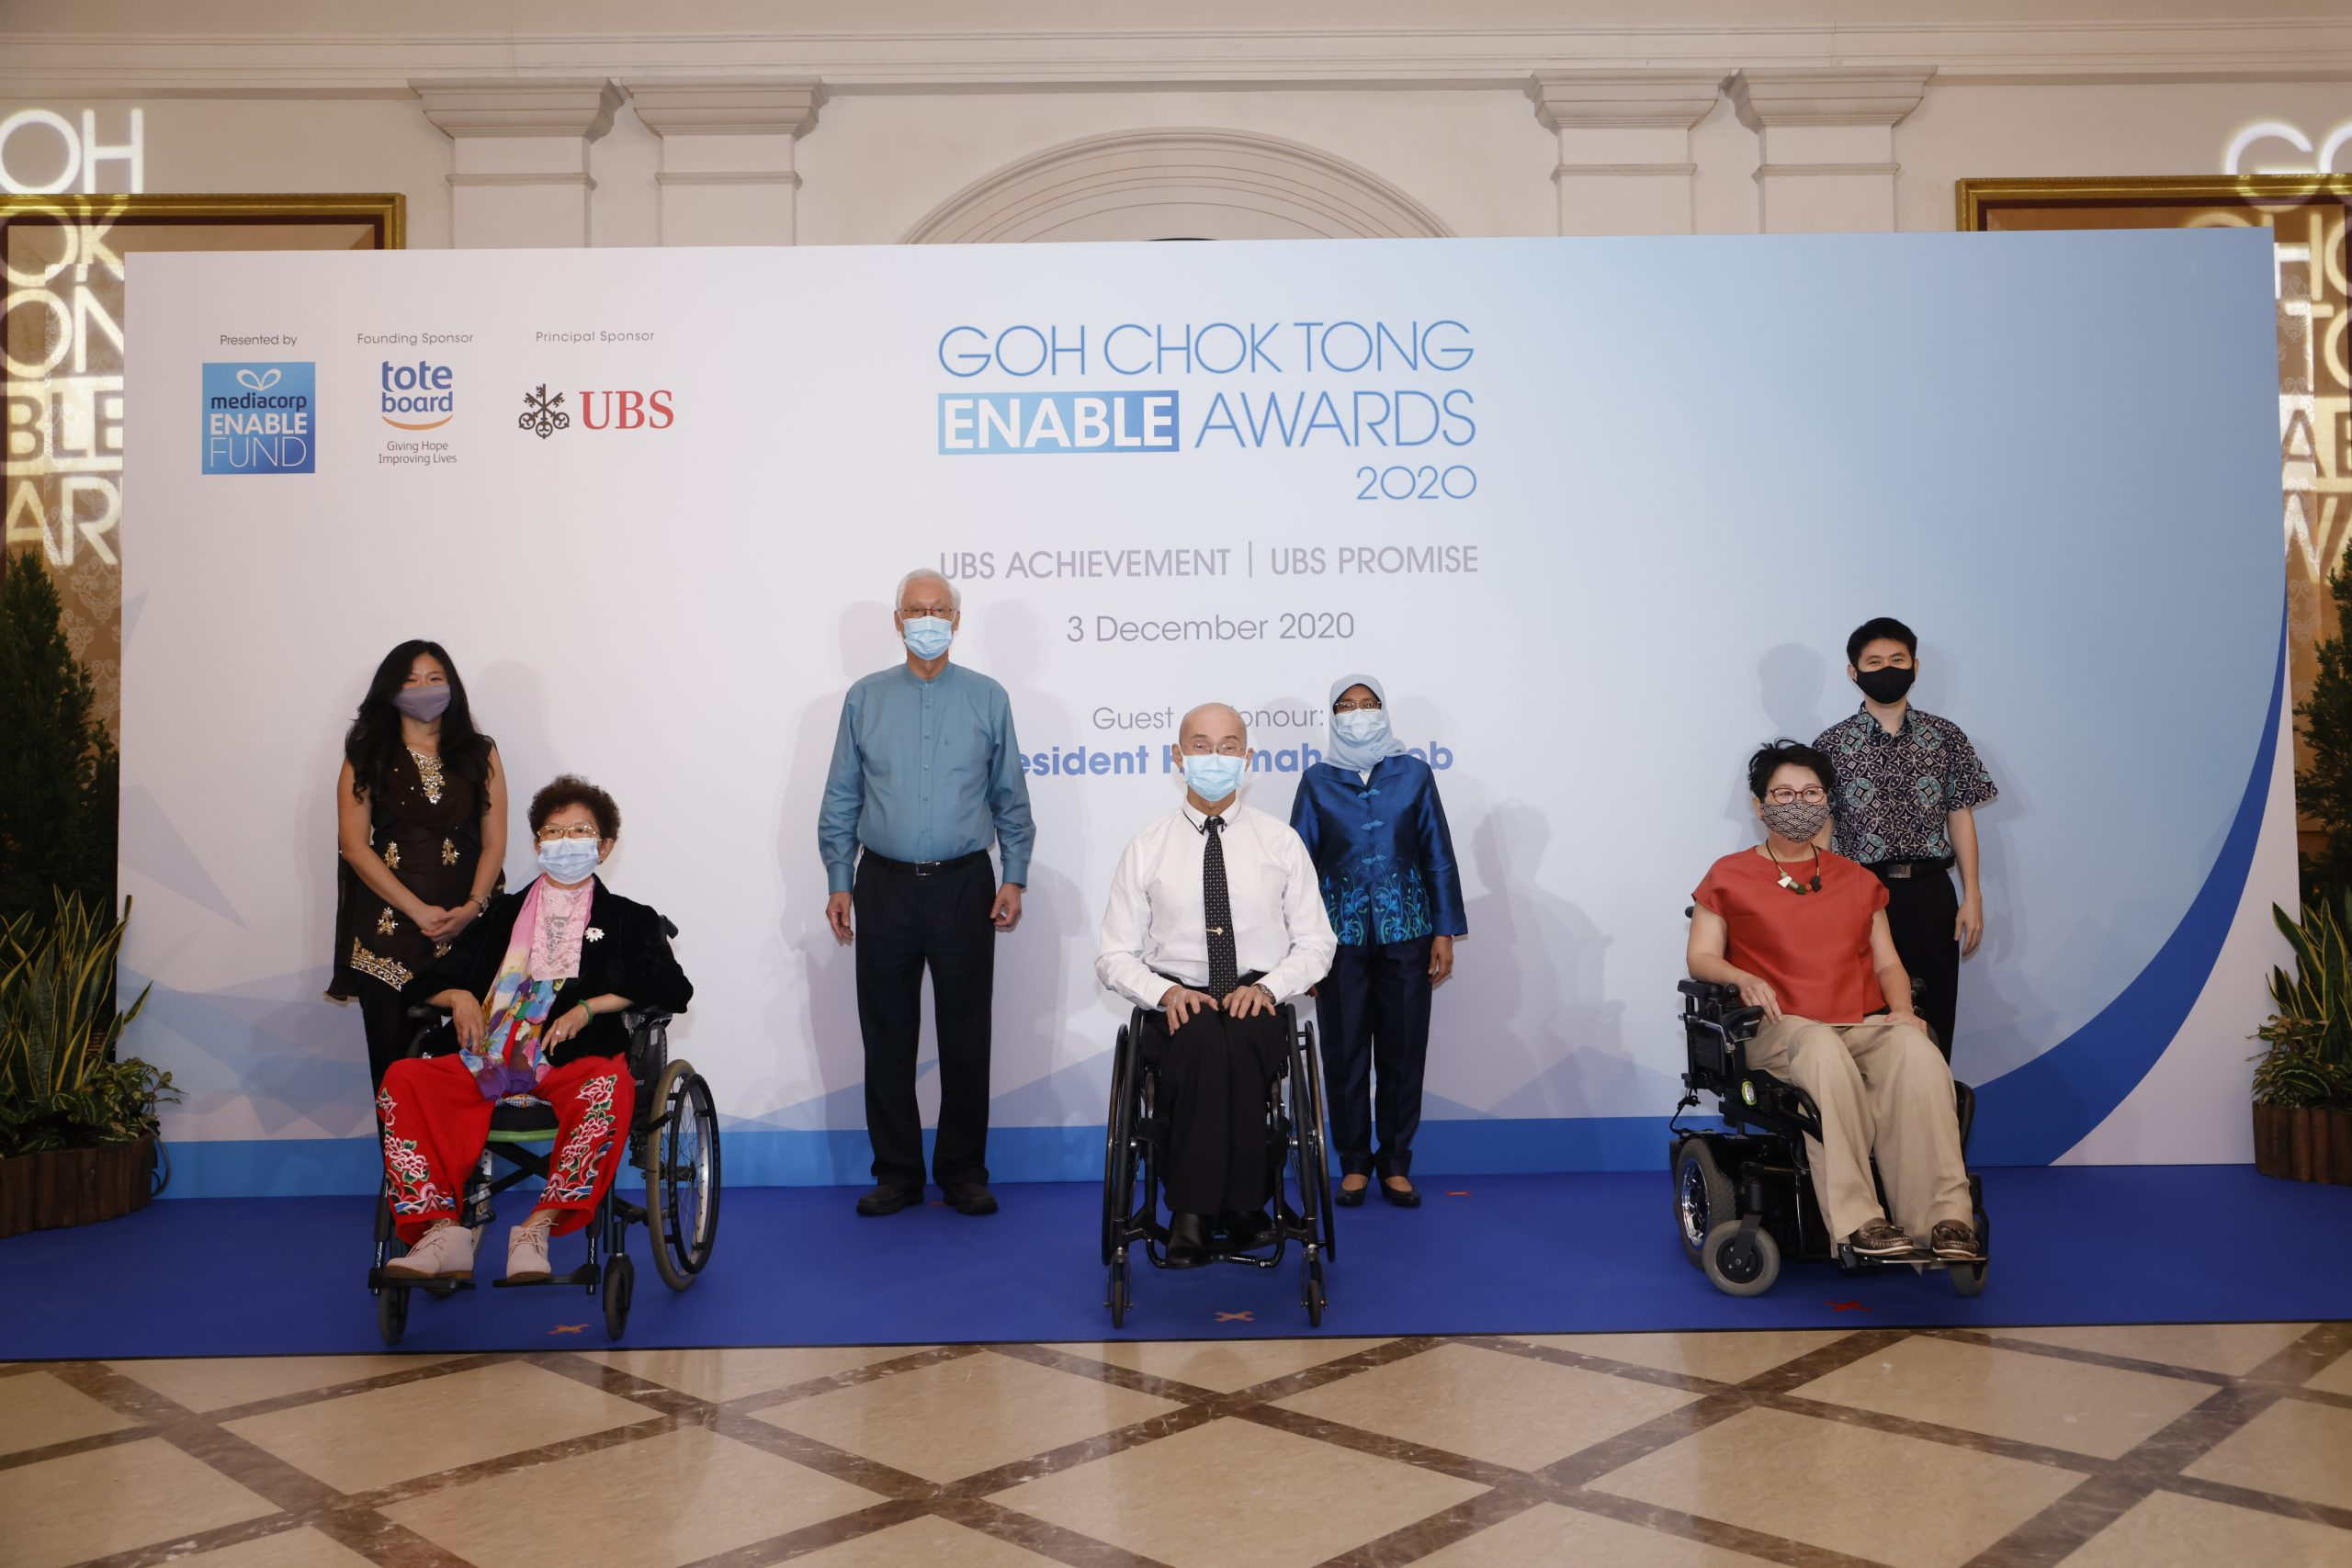 Photo shows Goh Chok Tong Enable Awards 2020 (UBS Achievement) awardees with President and ESM Goh Chok Tong.